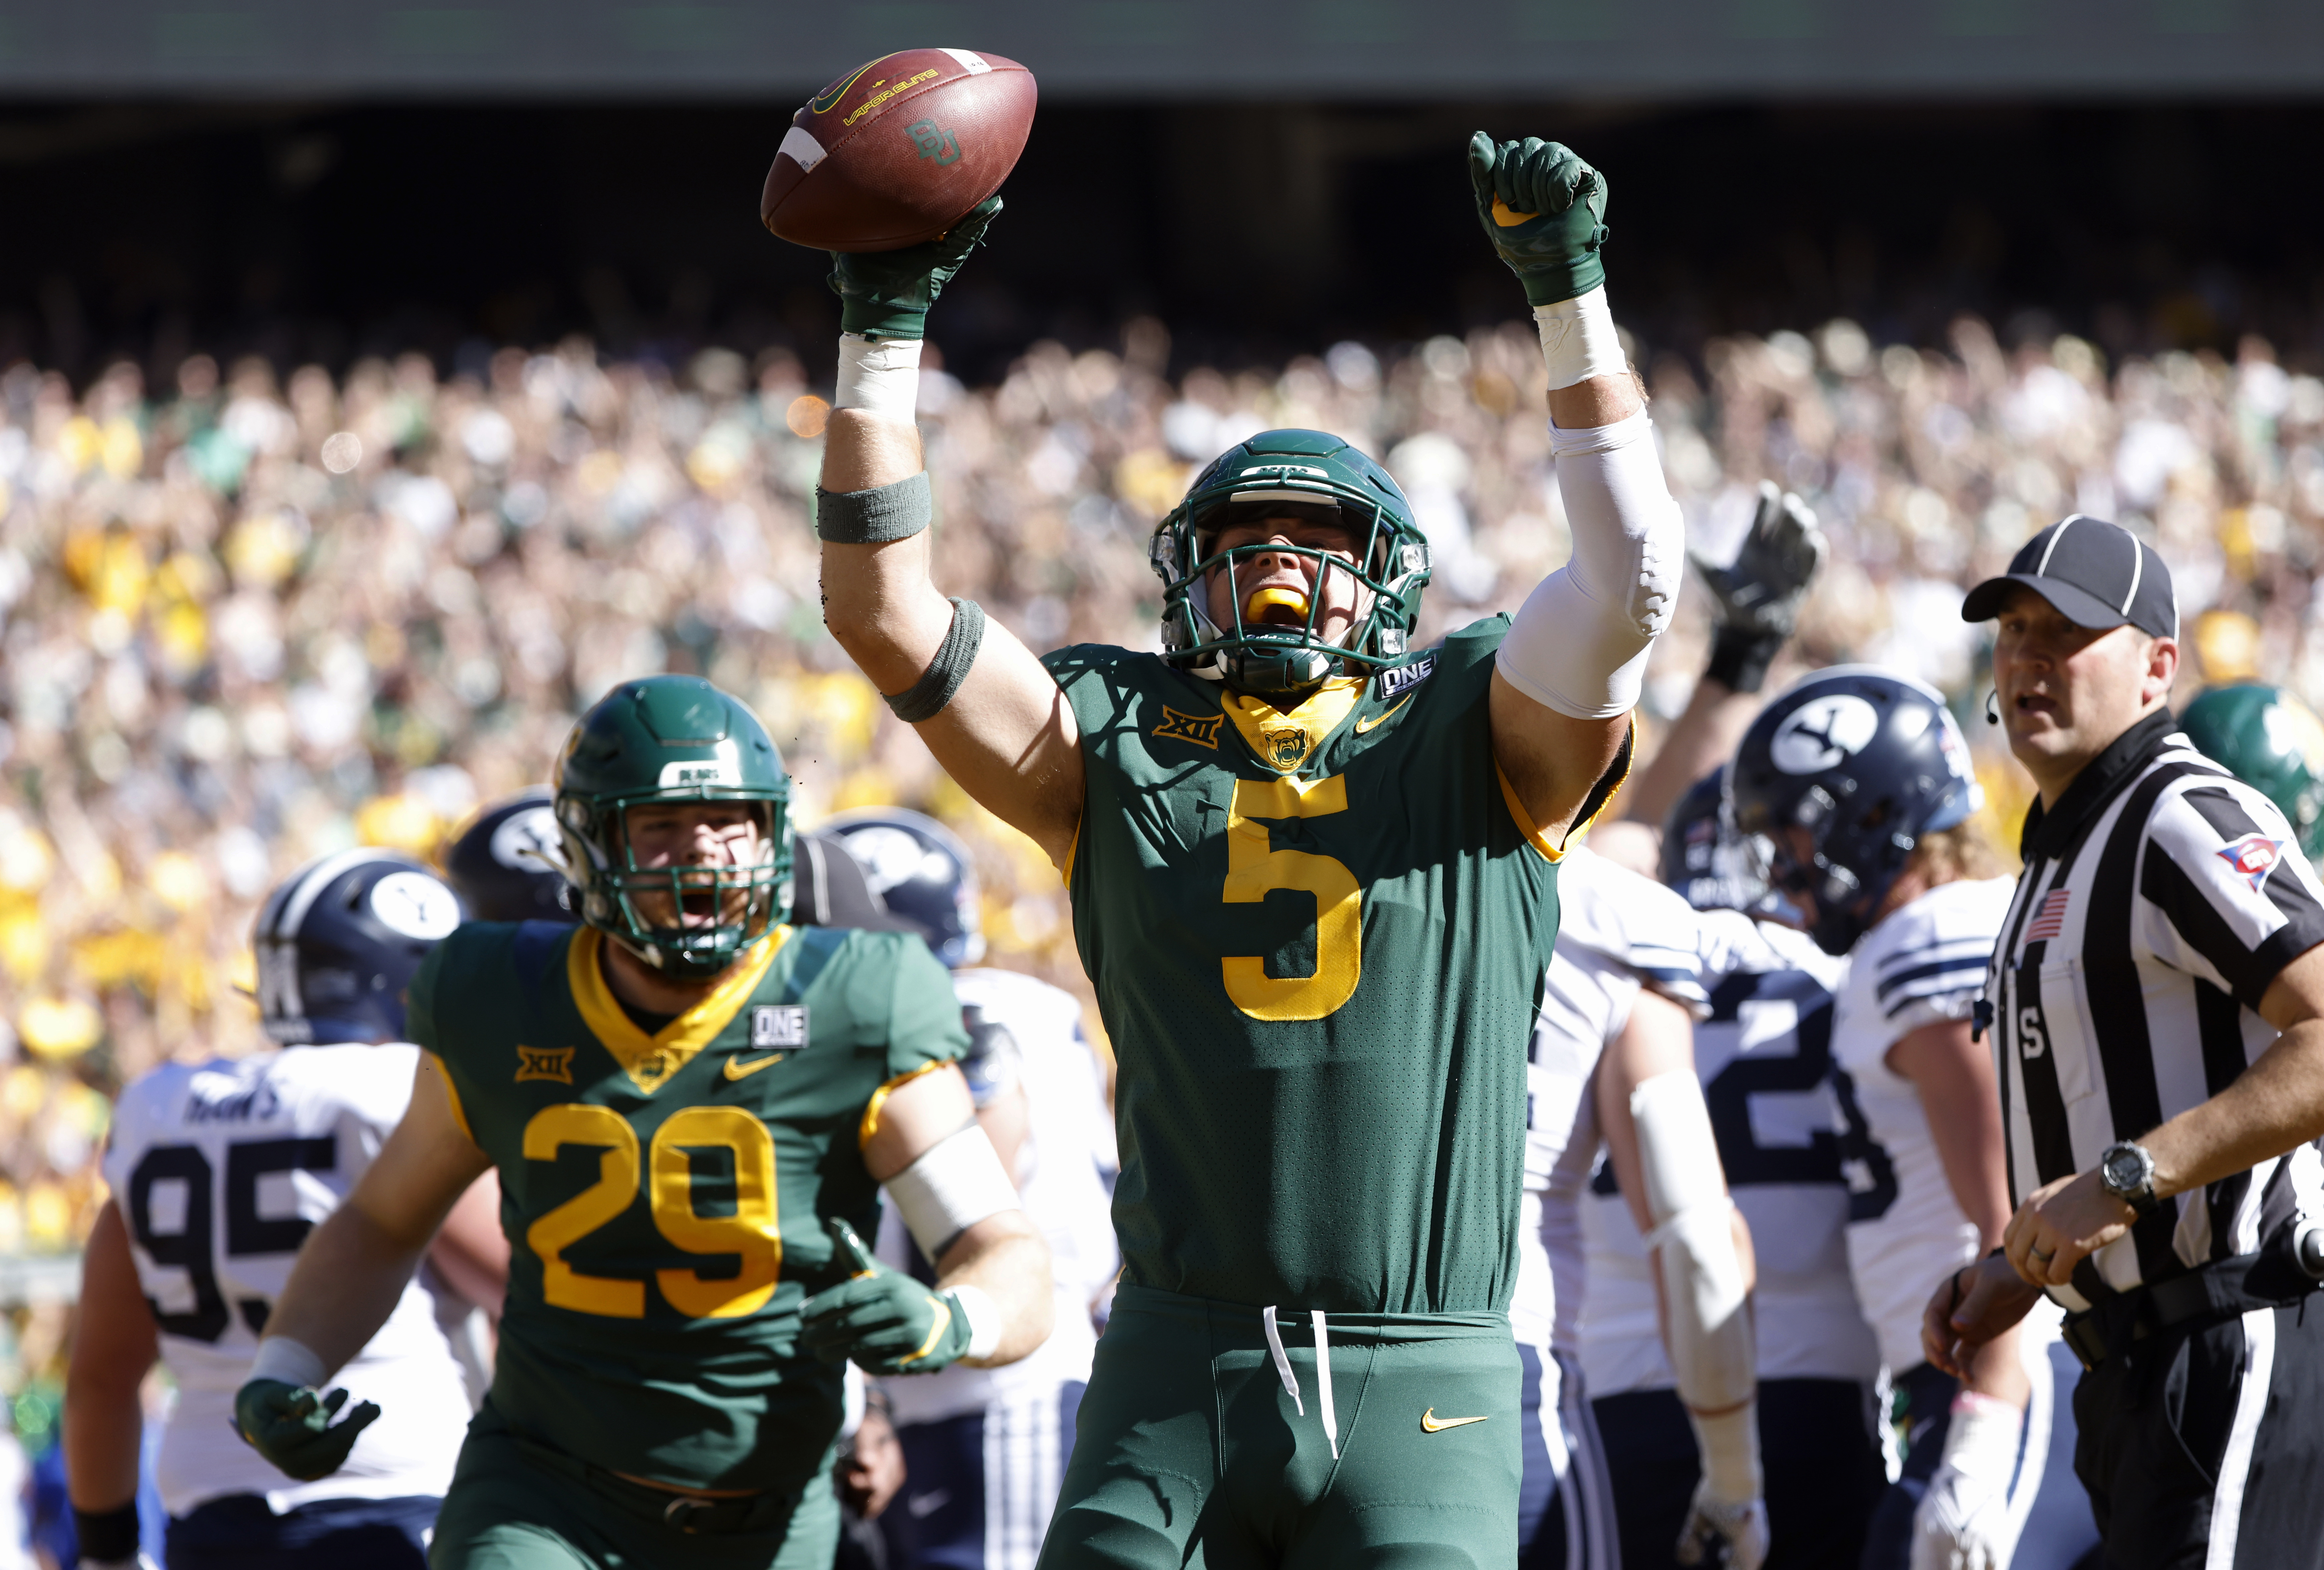 Baylor's Dillon Doyle (5) celebrates with teammate Jackson Shupp (29) after scoring a touchdown against BYU.